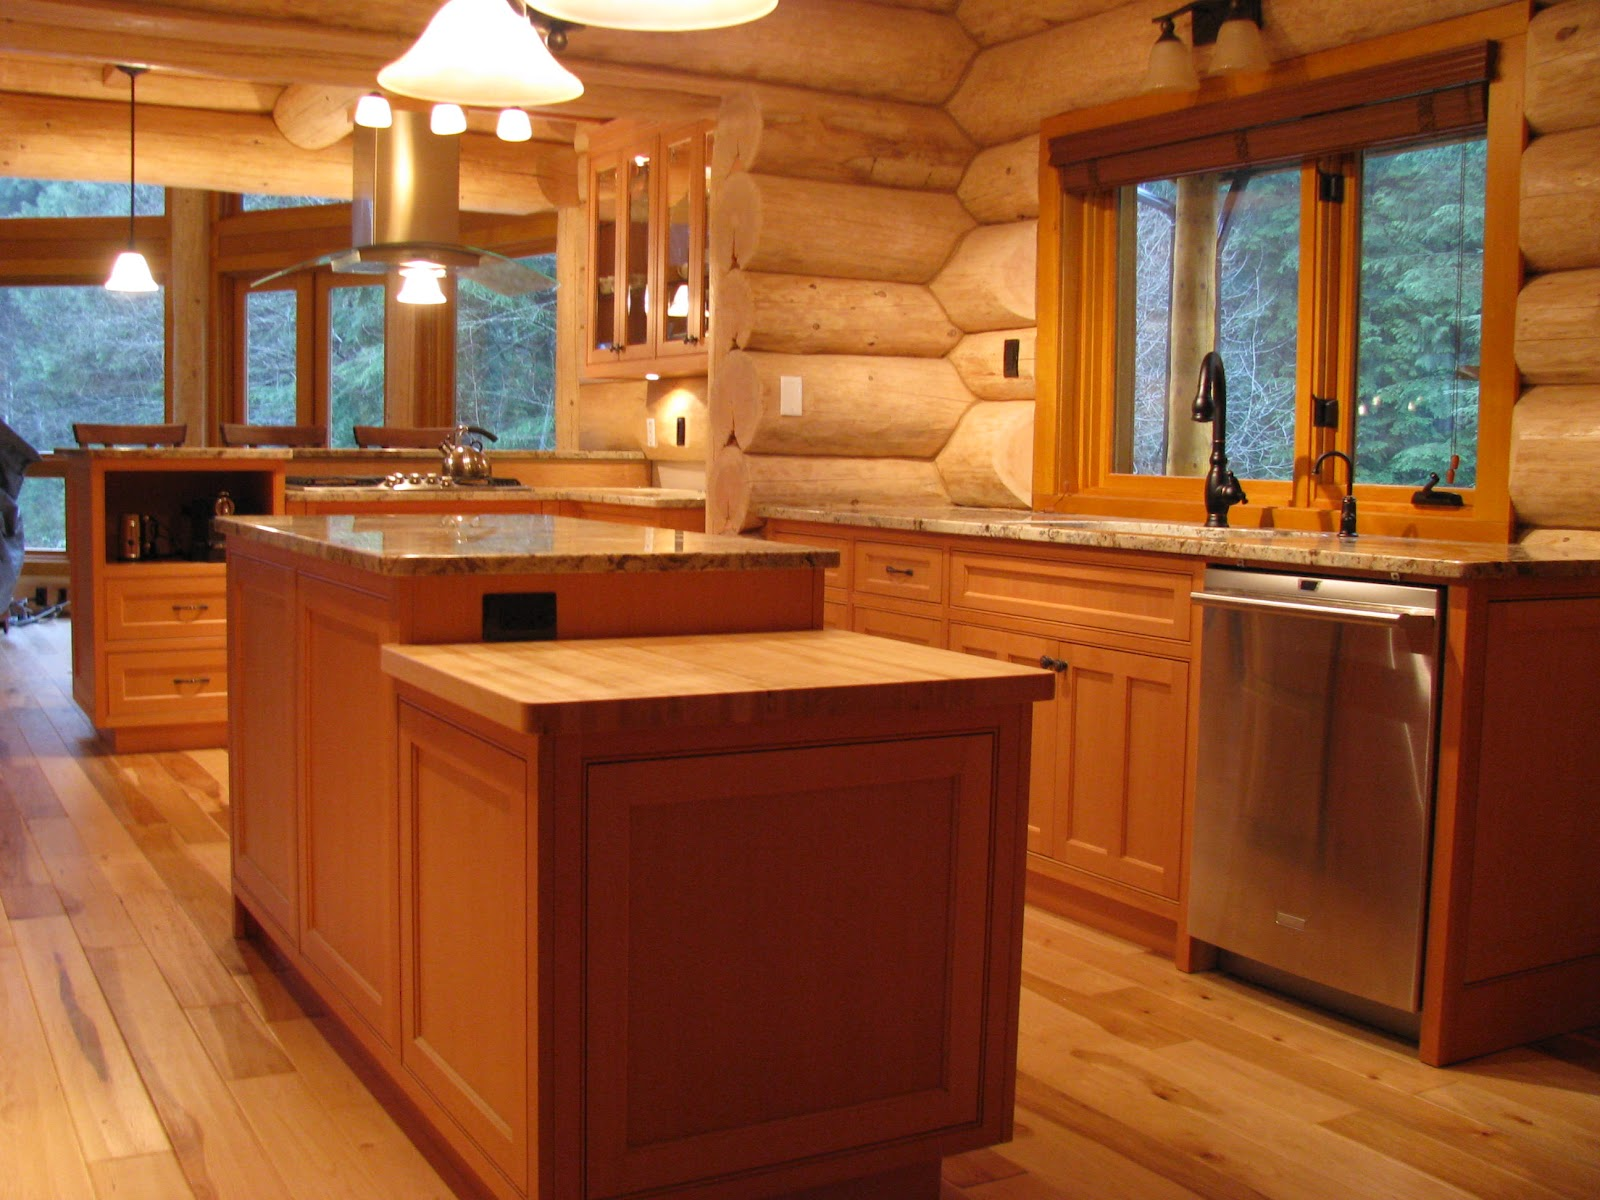 Home Cabinets Simply Beautiful Kitchens The Blog Custom Log Home